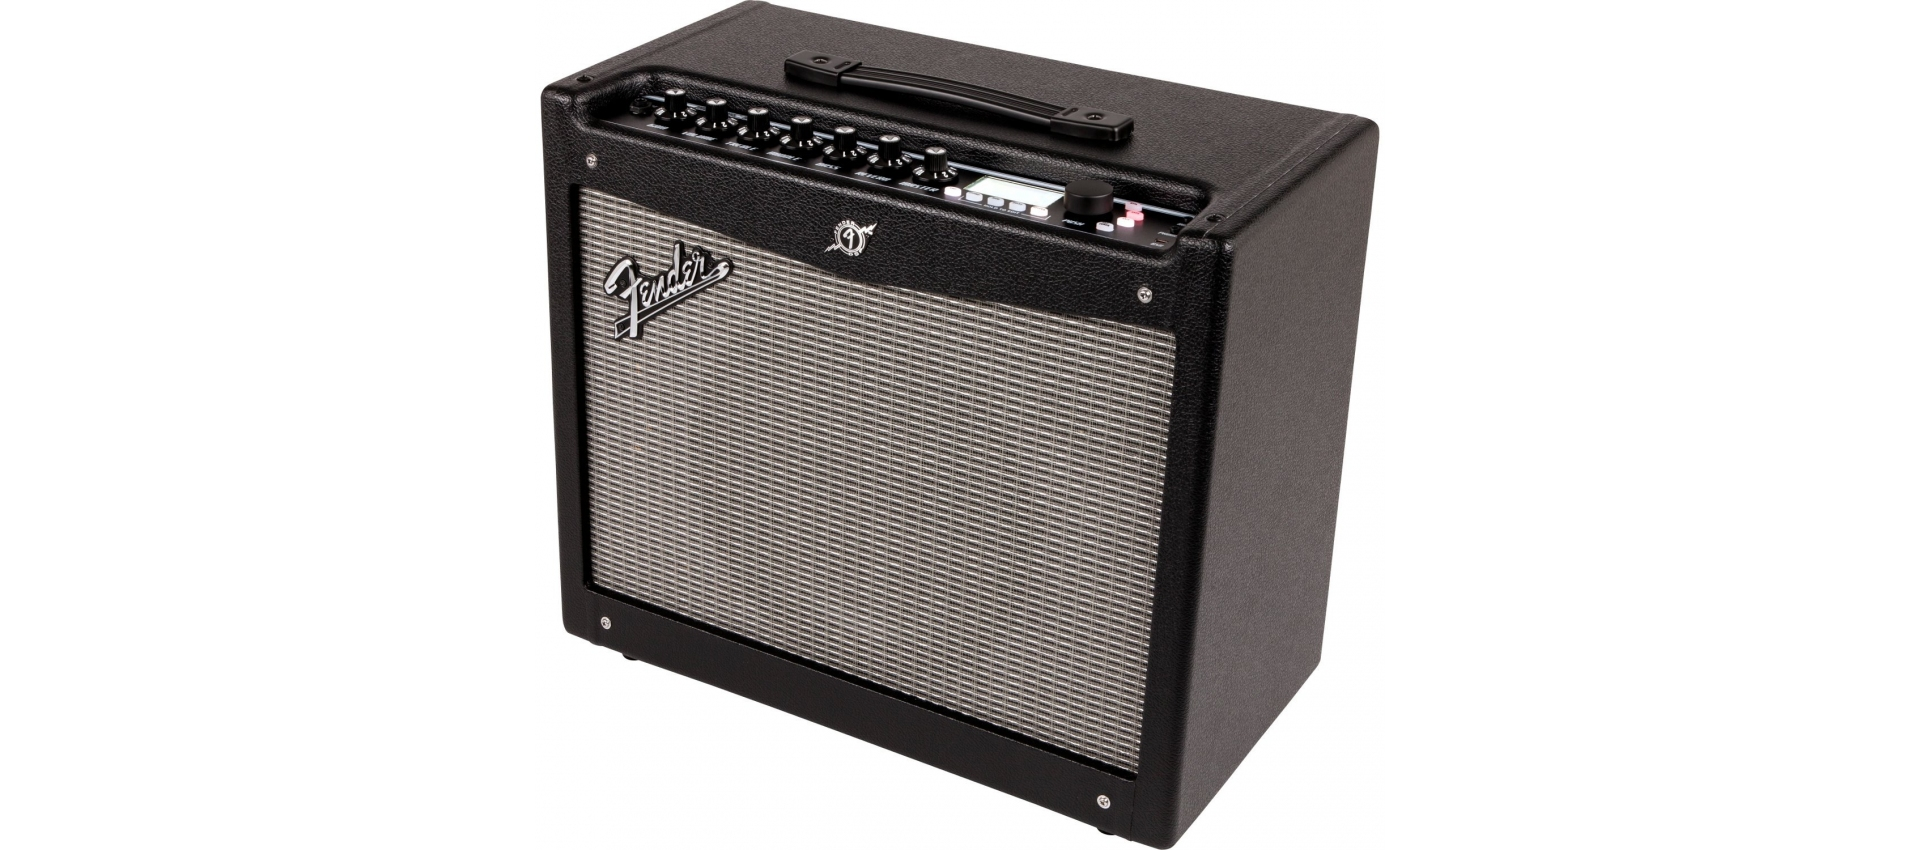 fender mustang iii v2 combo programmabile 100w combo per chitarra elettrica. Black Bedroom Furniture Sets. Home Design Ideas